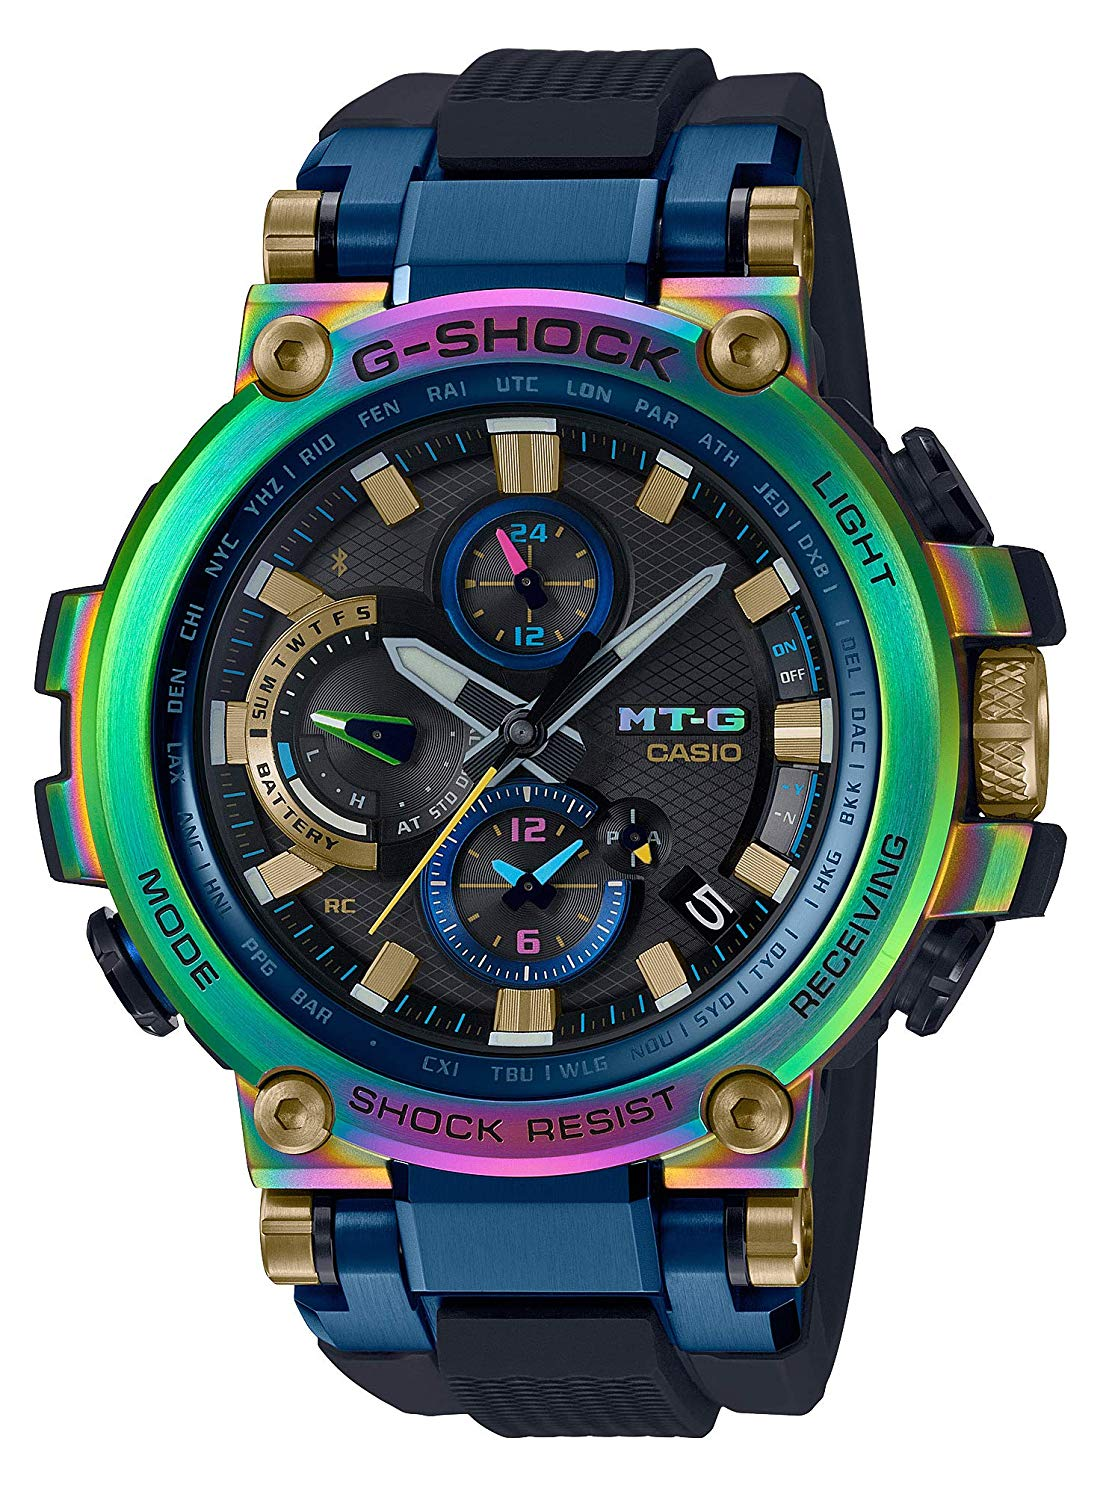 CASIO G-SHOCK MTG-B1000RB-2AJR Bluetooth